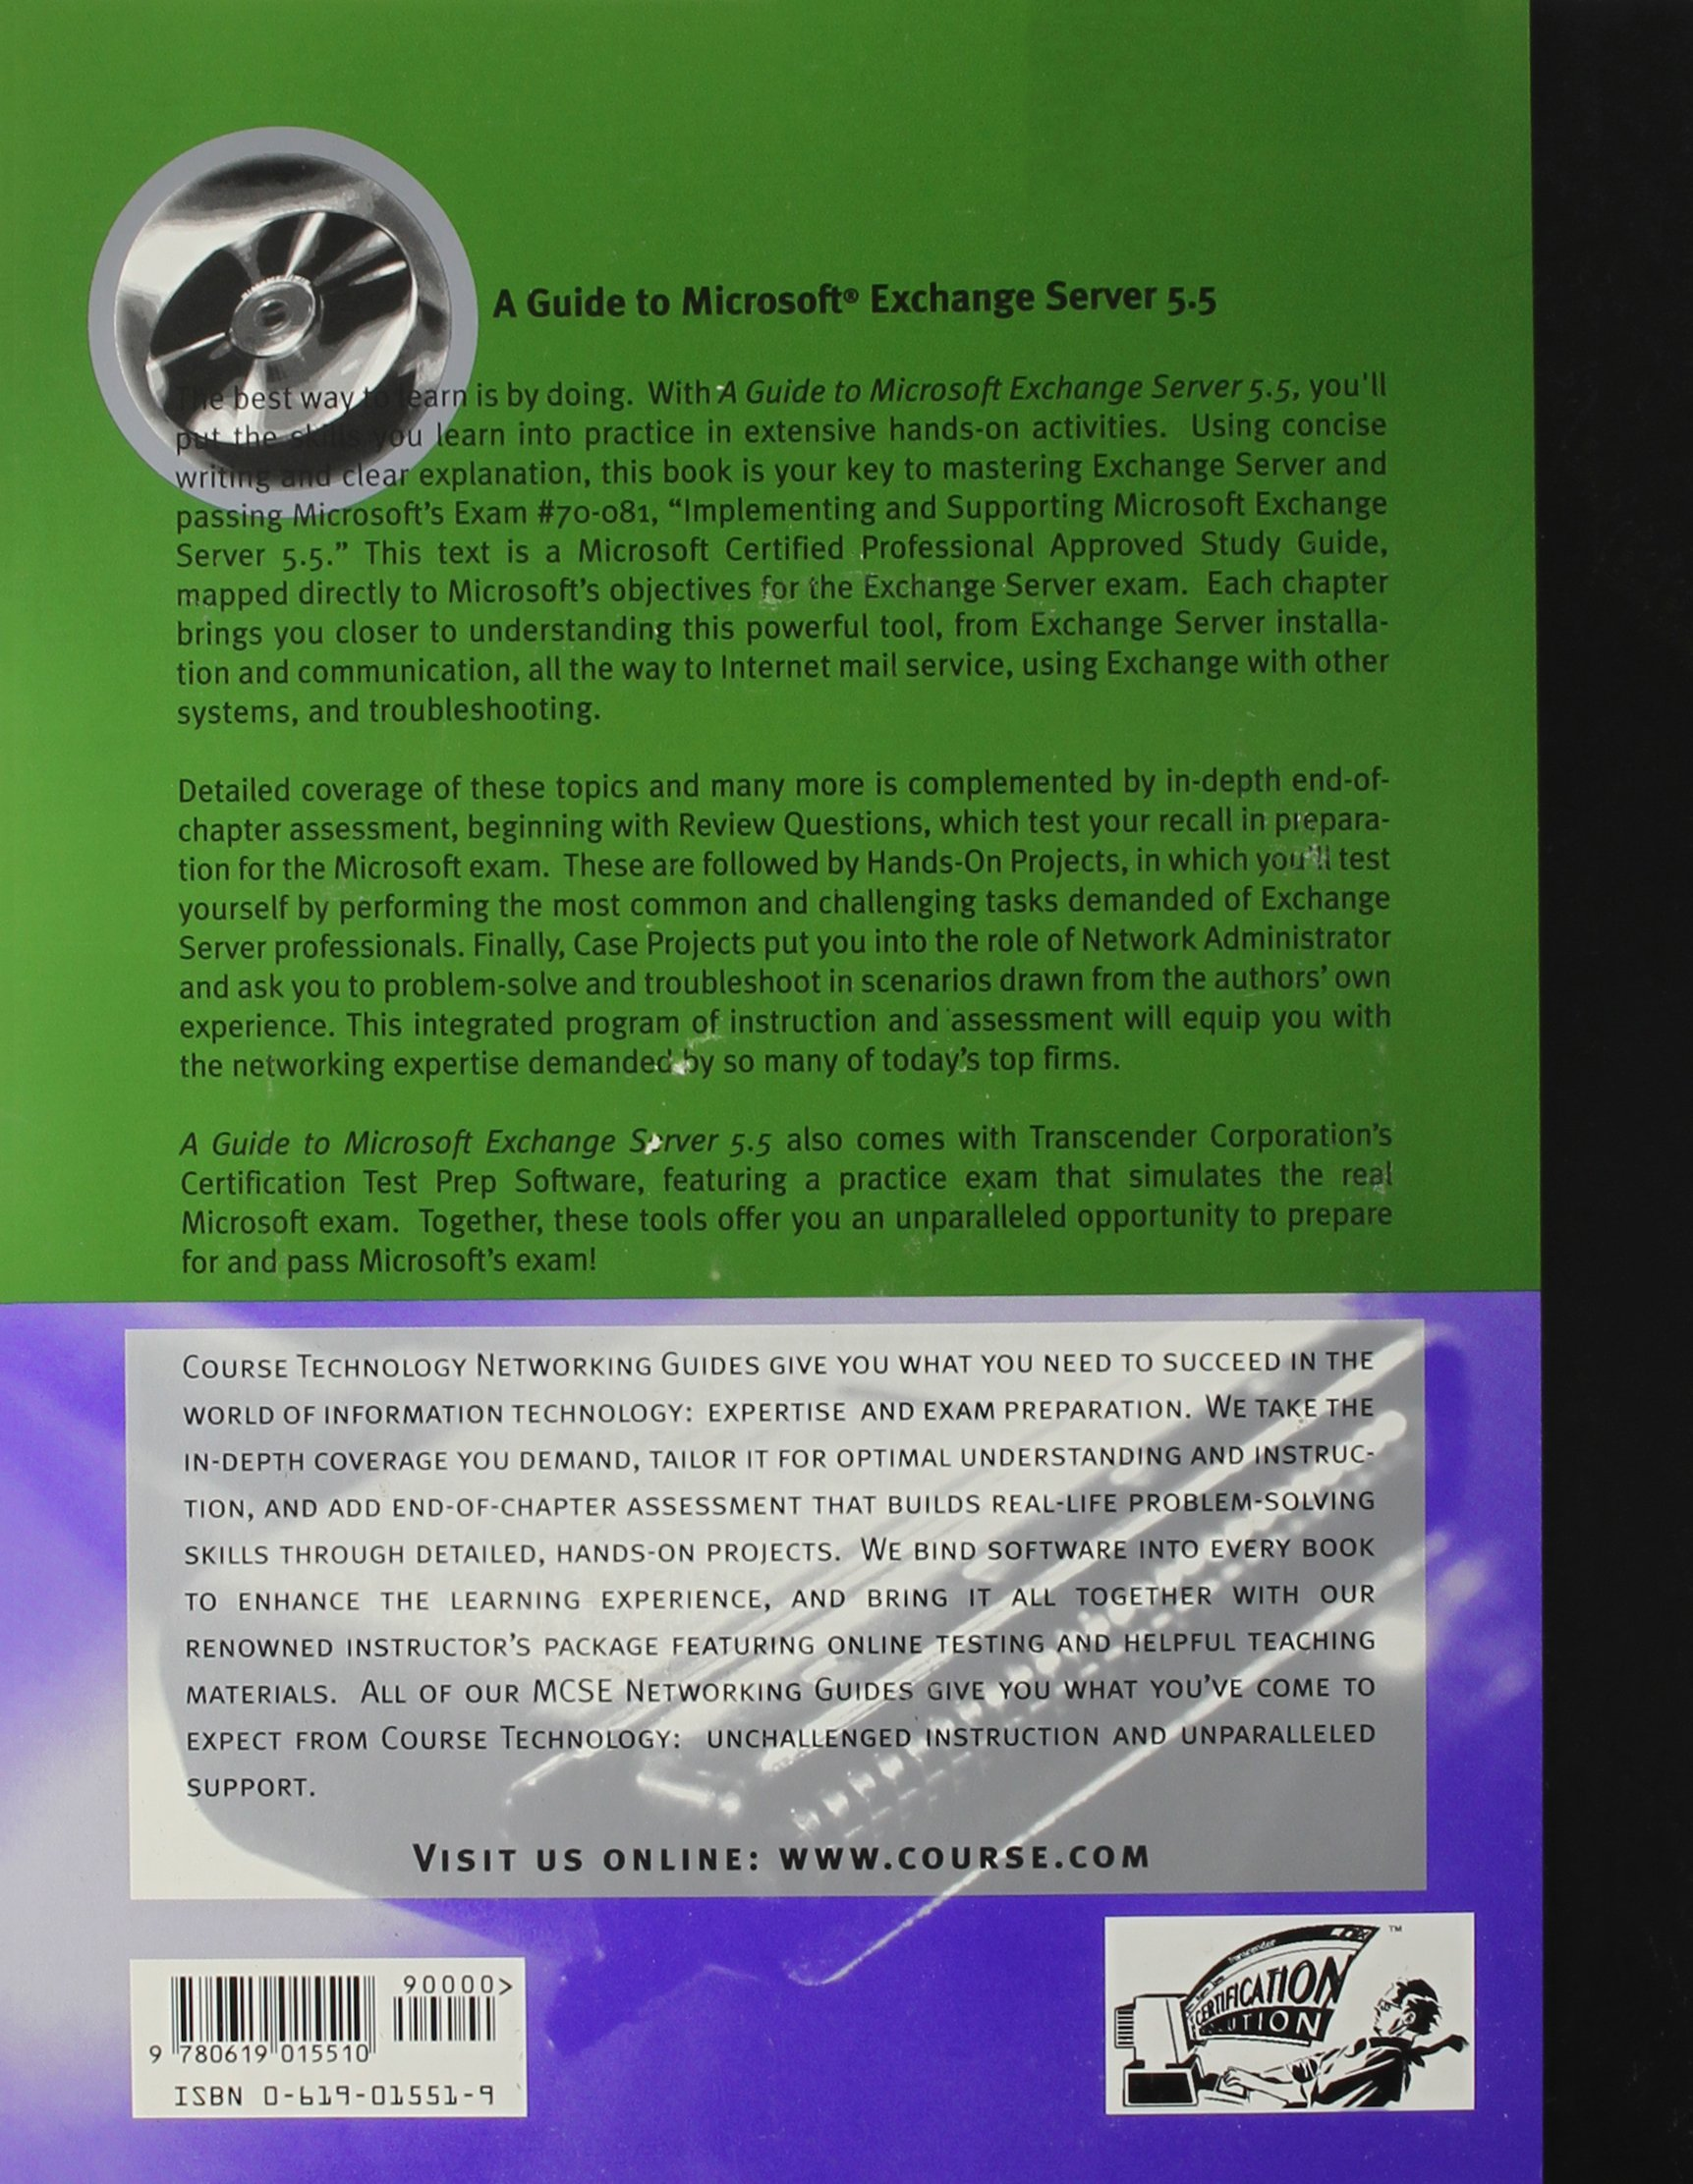 A Guide To Microsoft Exchange Server 55 Amazon Ed Tittel